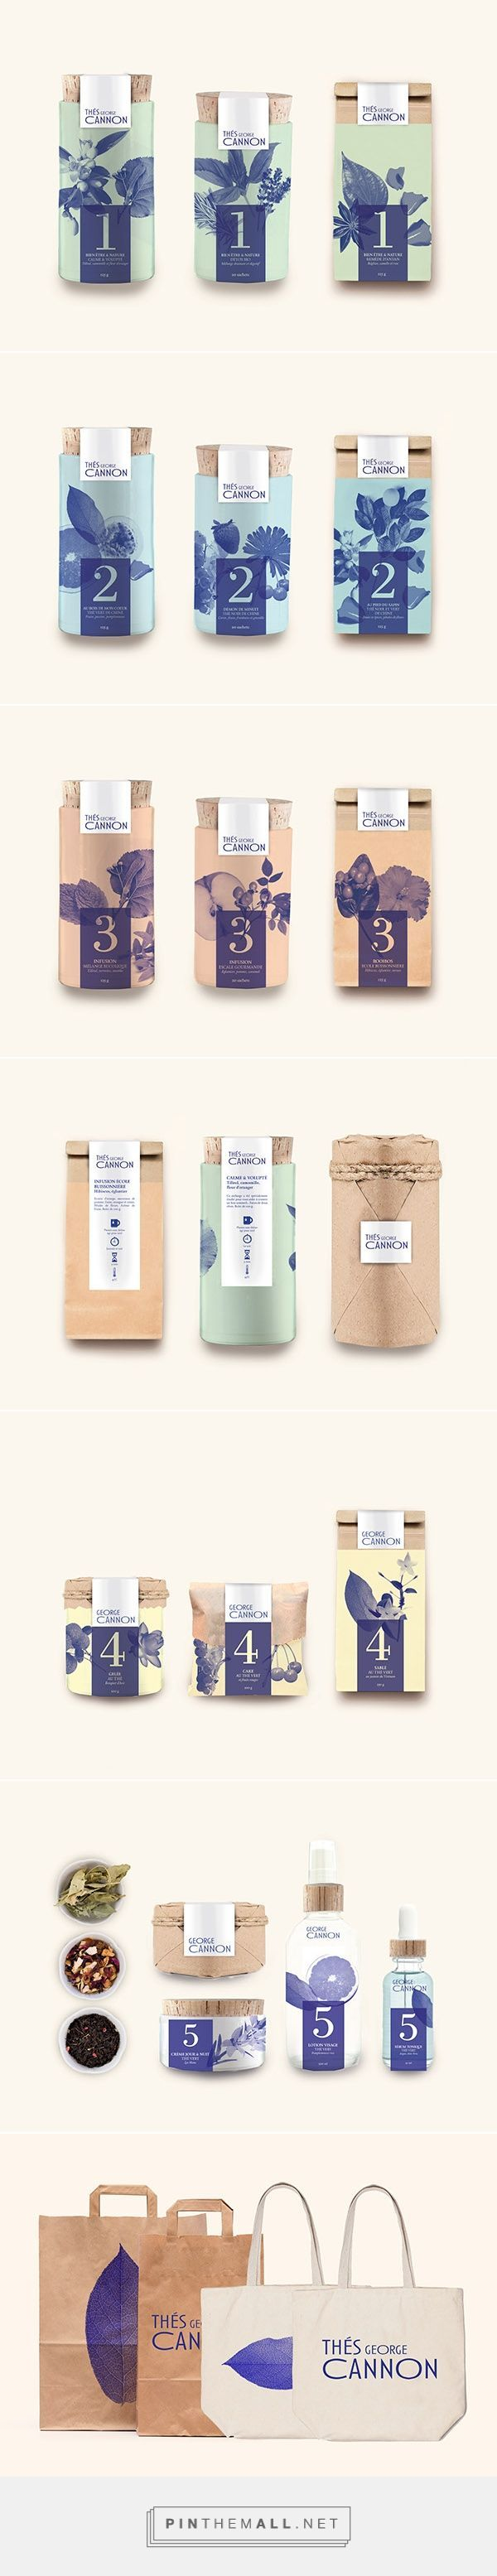 Thés George Cannon on Behance by Marion Dufour curated by Packaging Diva PD. Soft enticing packaging branding.